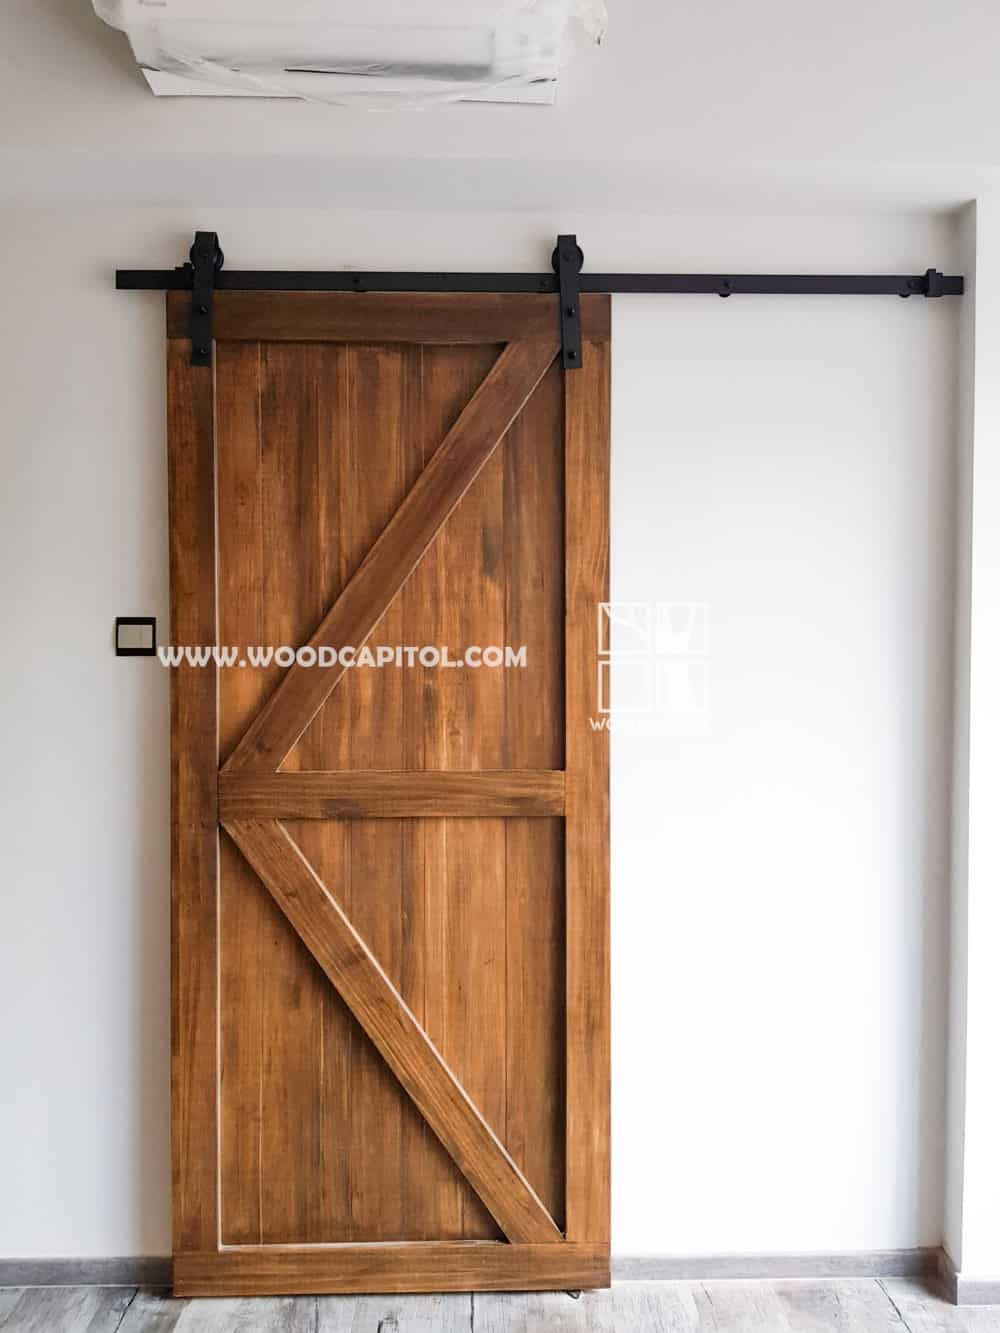 Wood Capitol Barn Door